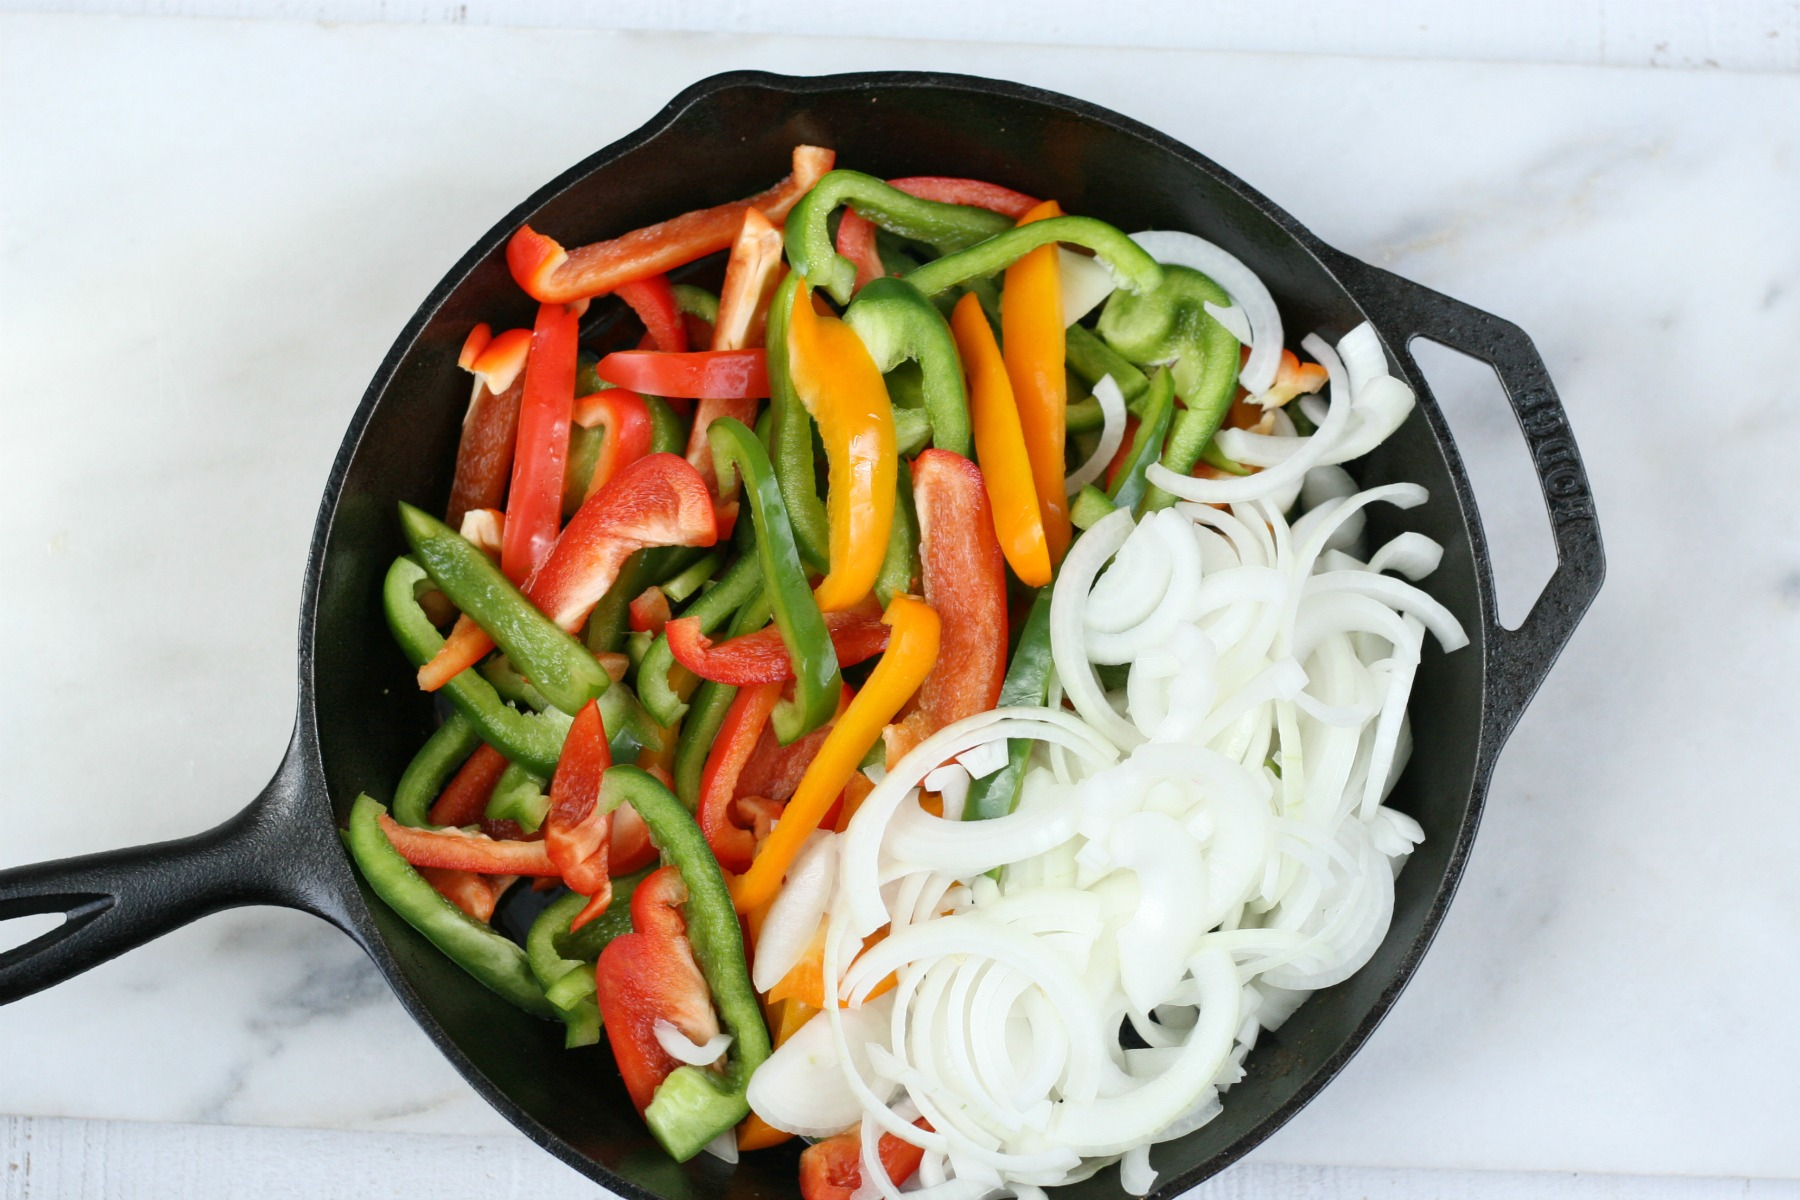 cut up bell peppers and white onions in a cast iron skillet.